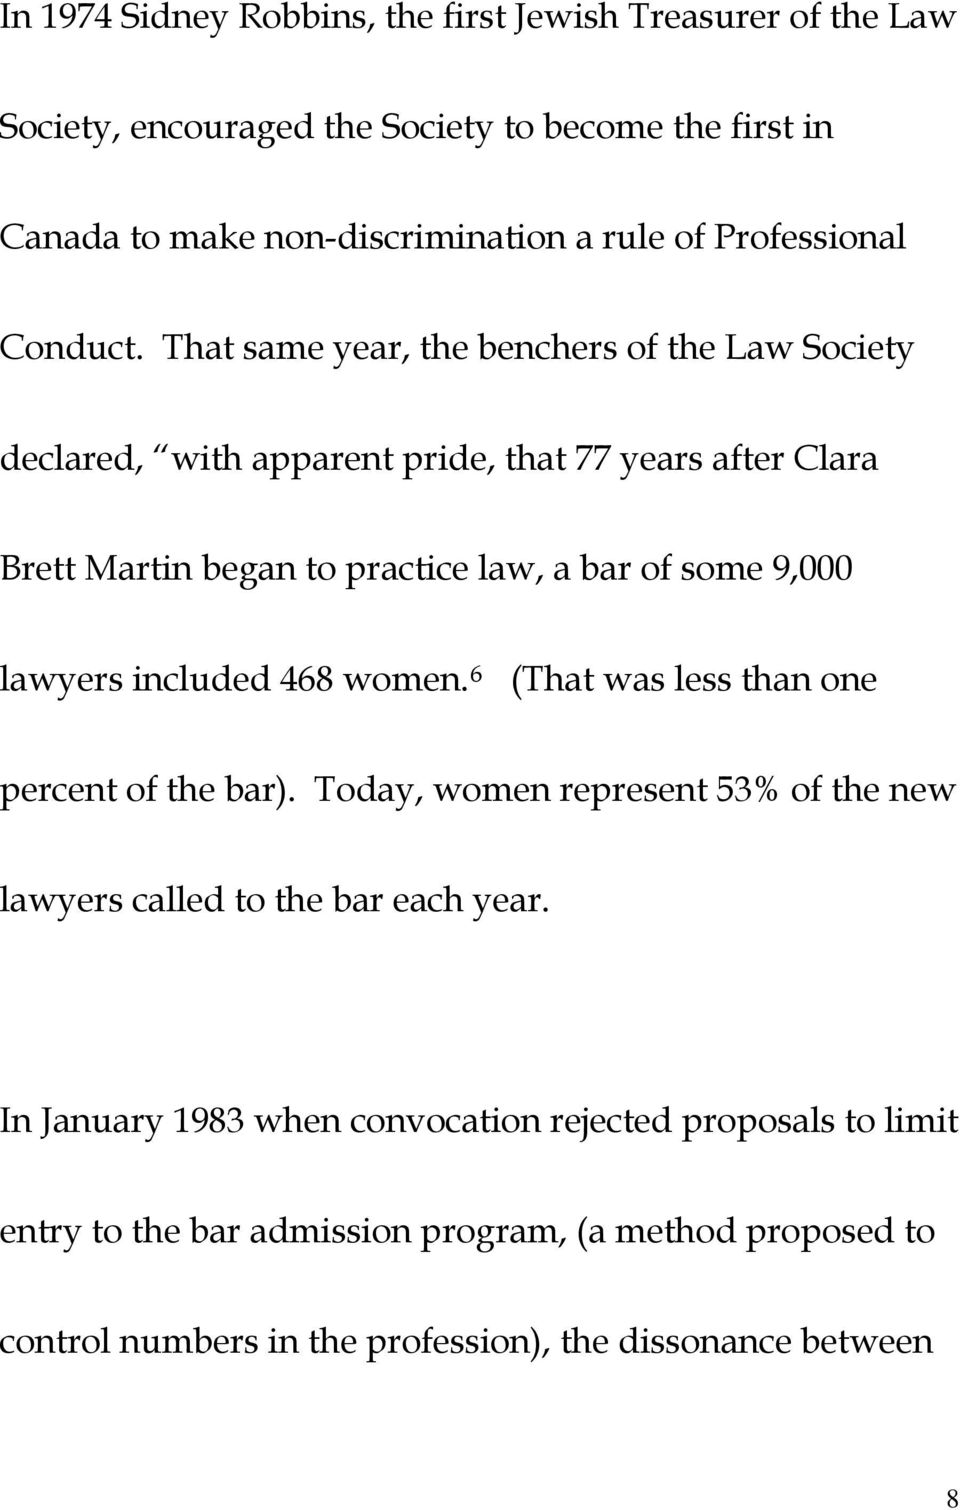 That same year, the benchers of the Law Society declared, with apparent pride, that 77 years after Clara Brett Martin began to practice law, a bar of some 9,000 lawyers